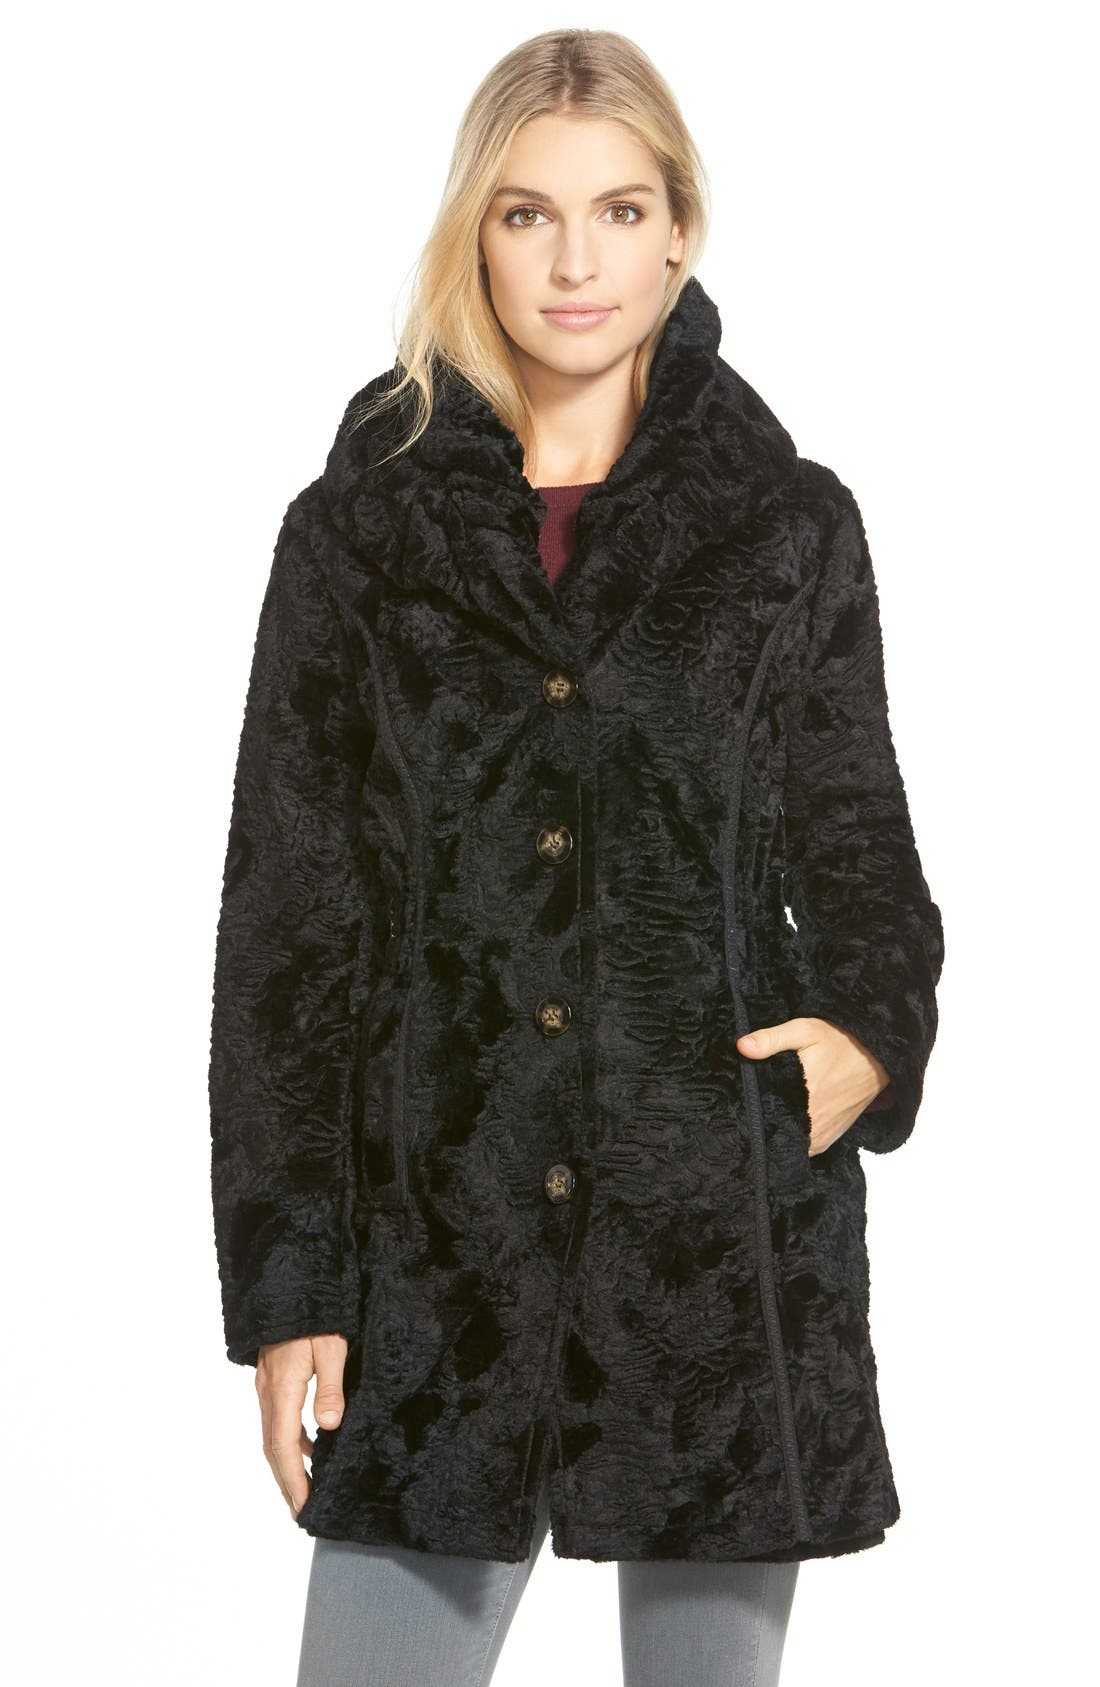 Main Image - Laundry by Shelli Segal Reversible Faux Persian Lamb Fur Coat (Regular & Petite)